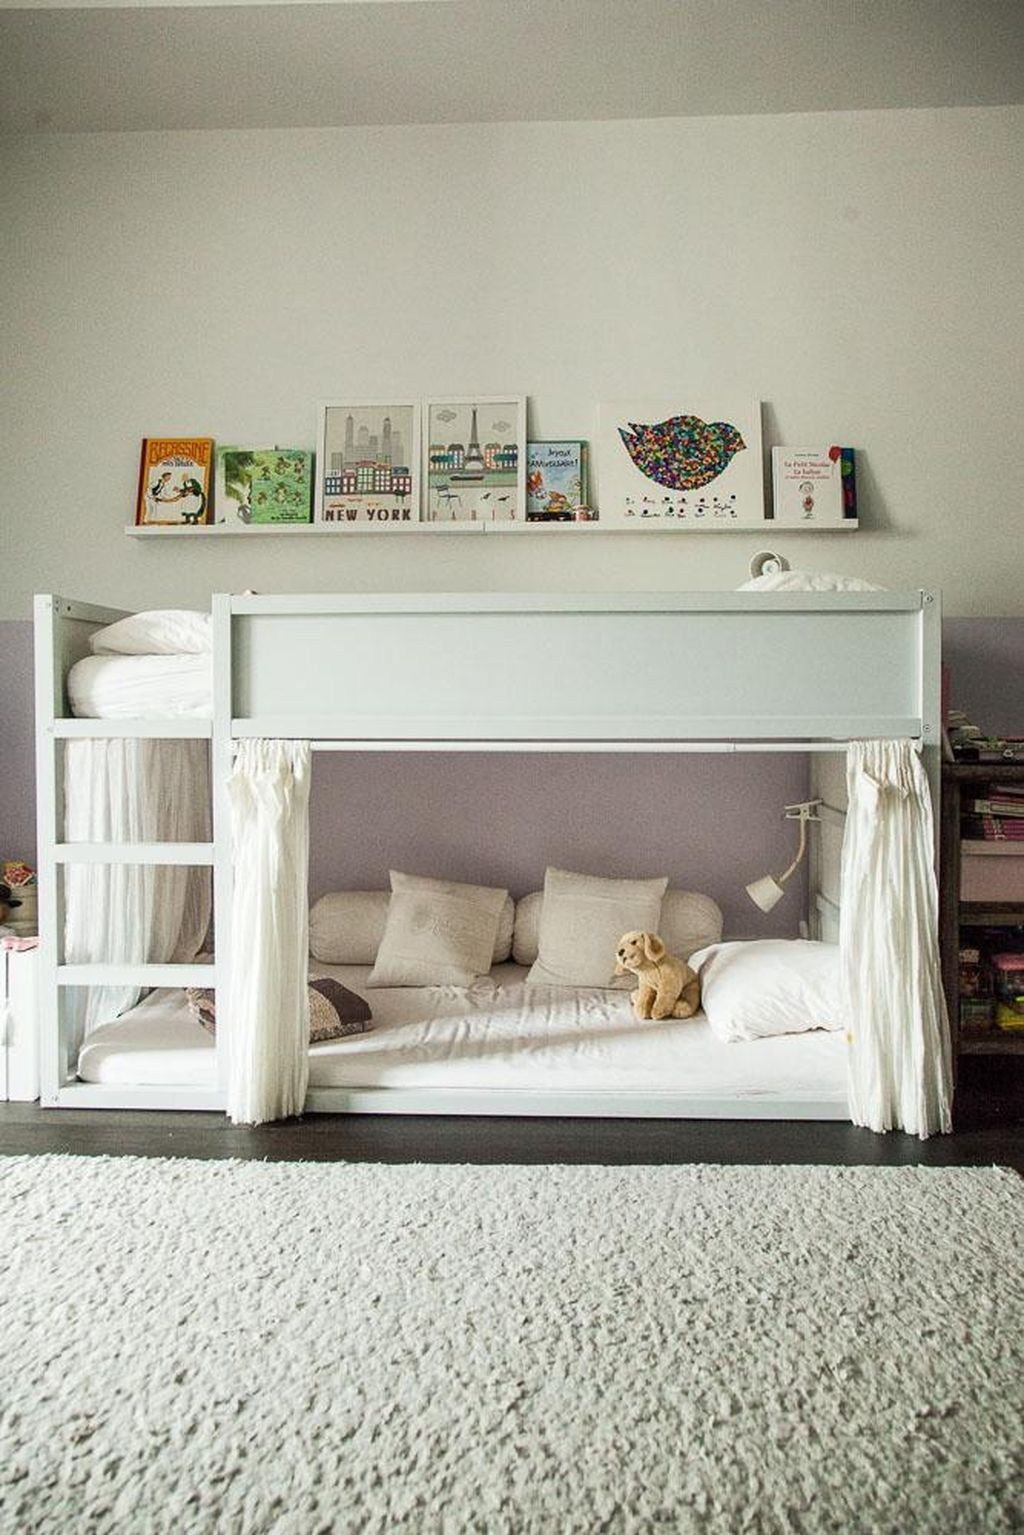 Pin by Joe on Home decor Ikea bunk bed hack, Kid beds